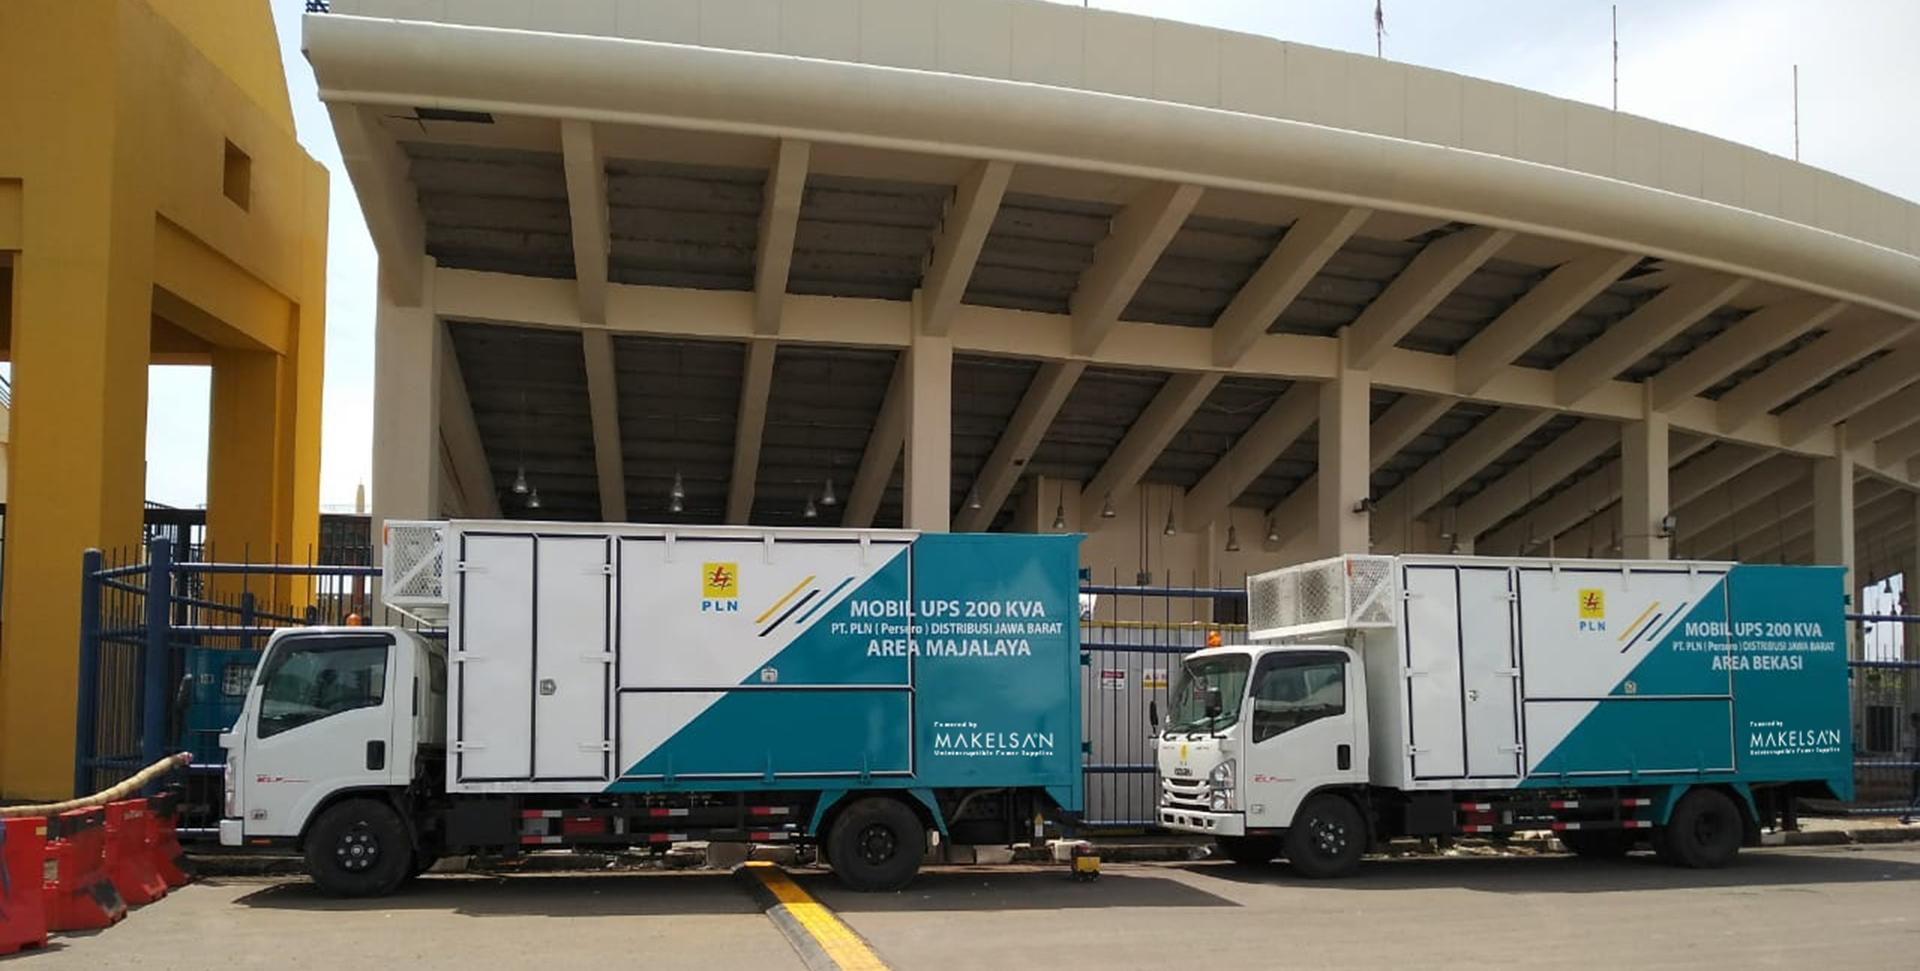 MAKELSAN MOBILE POWER CONTAINERS IS POWERING 18TH ASIAN GAMES IN INDONESIA!